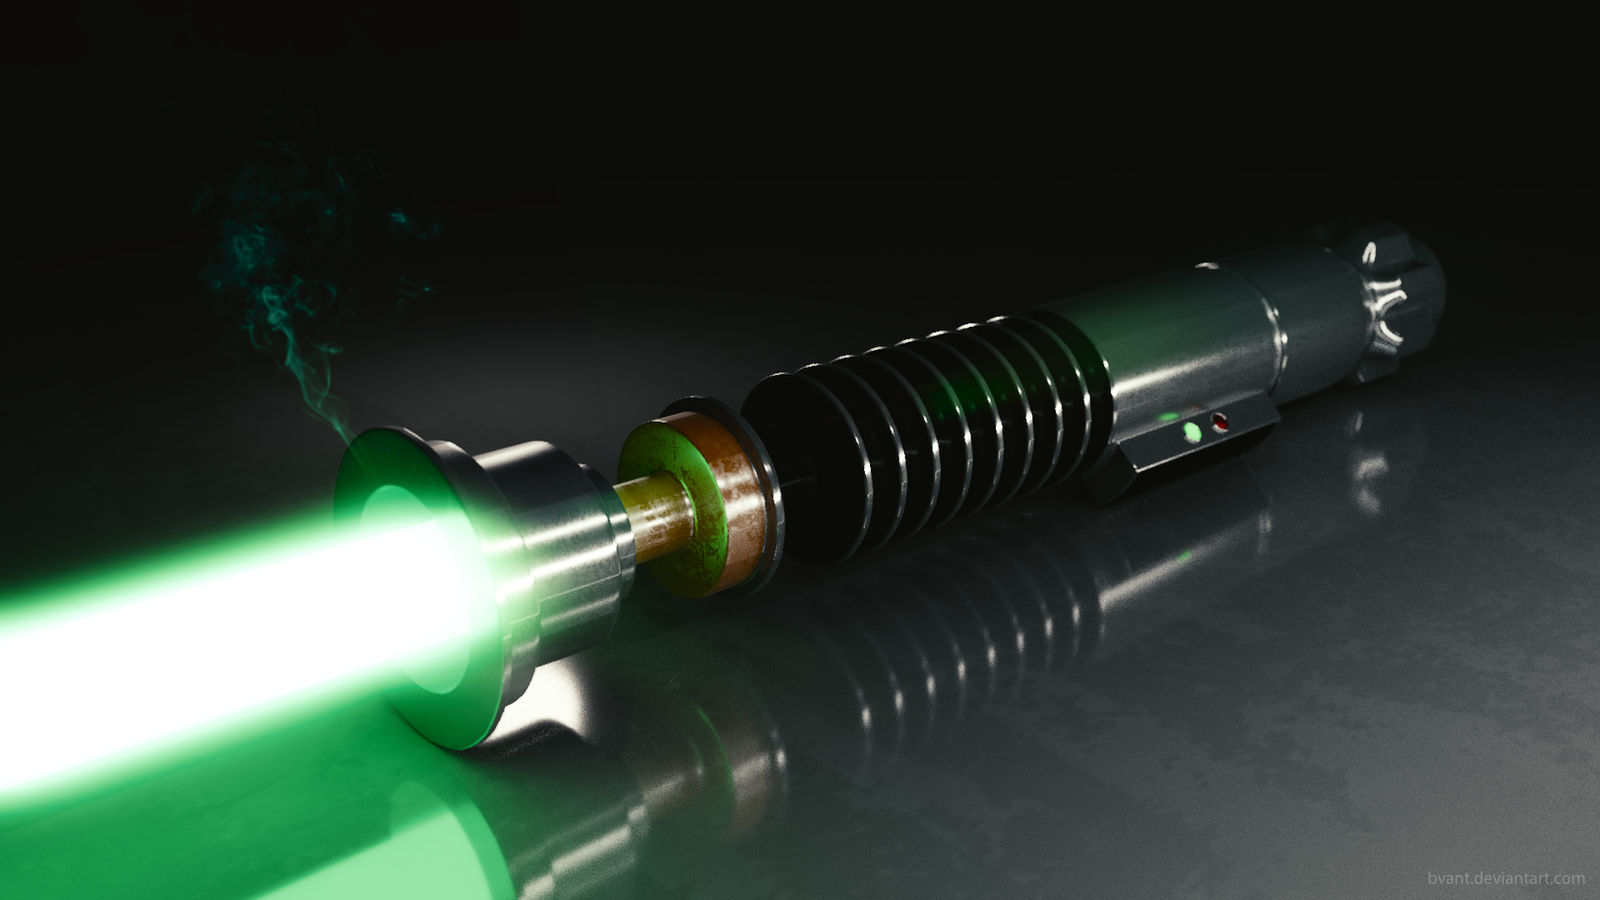 green lightsaber by bvant d9cqnoa